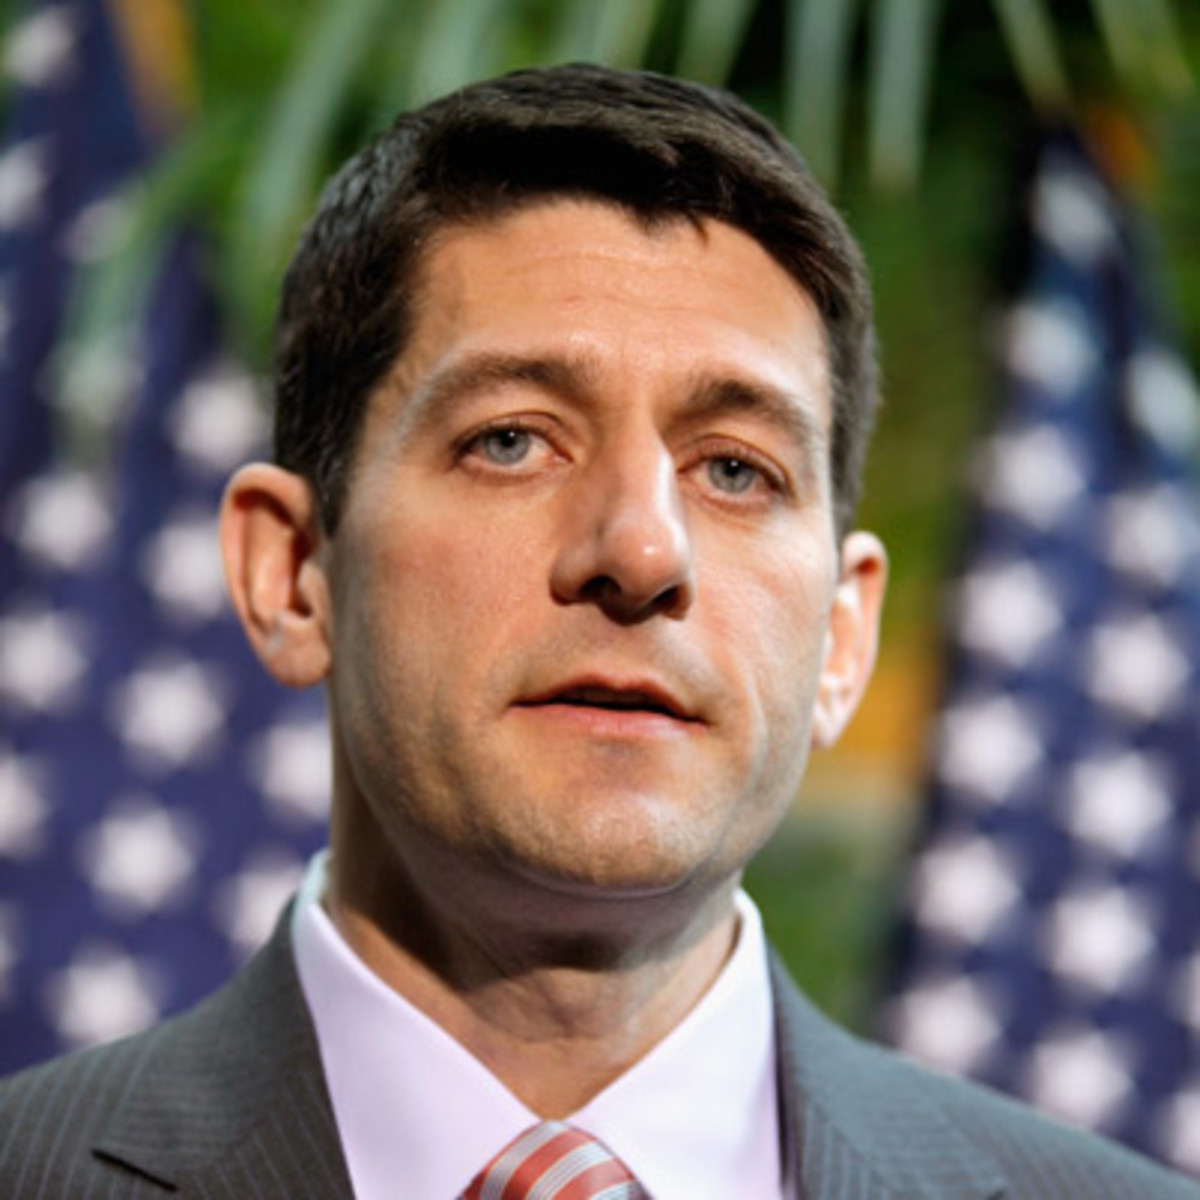 Paul Ryan in 2012 (Photo: Chip Somodevilla/Getty Images)